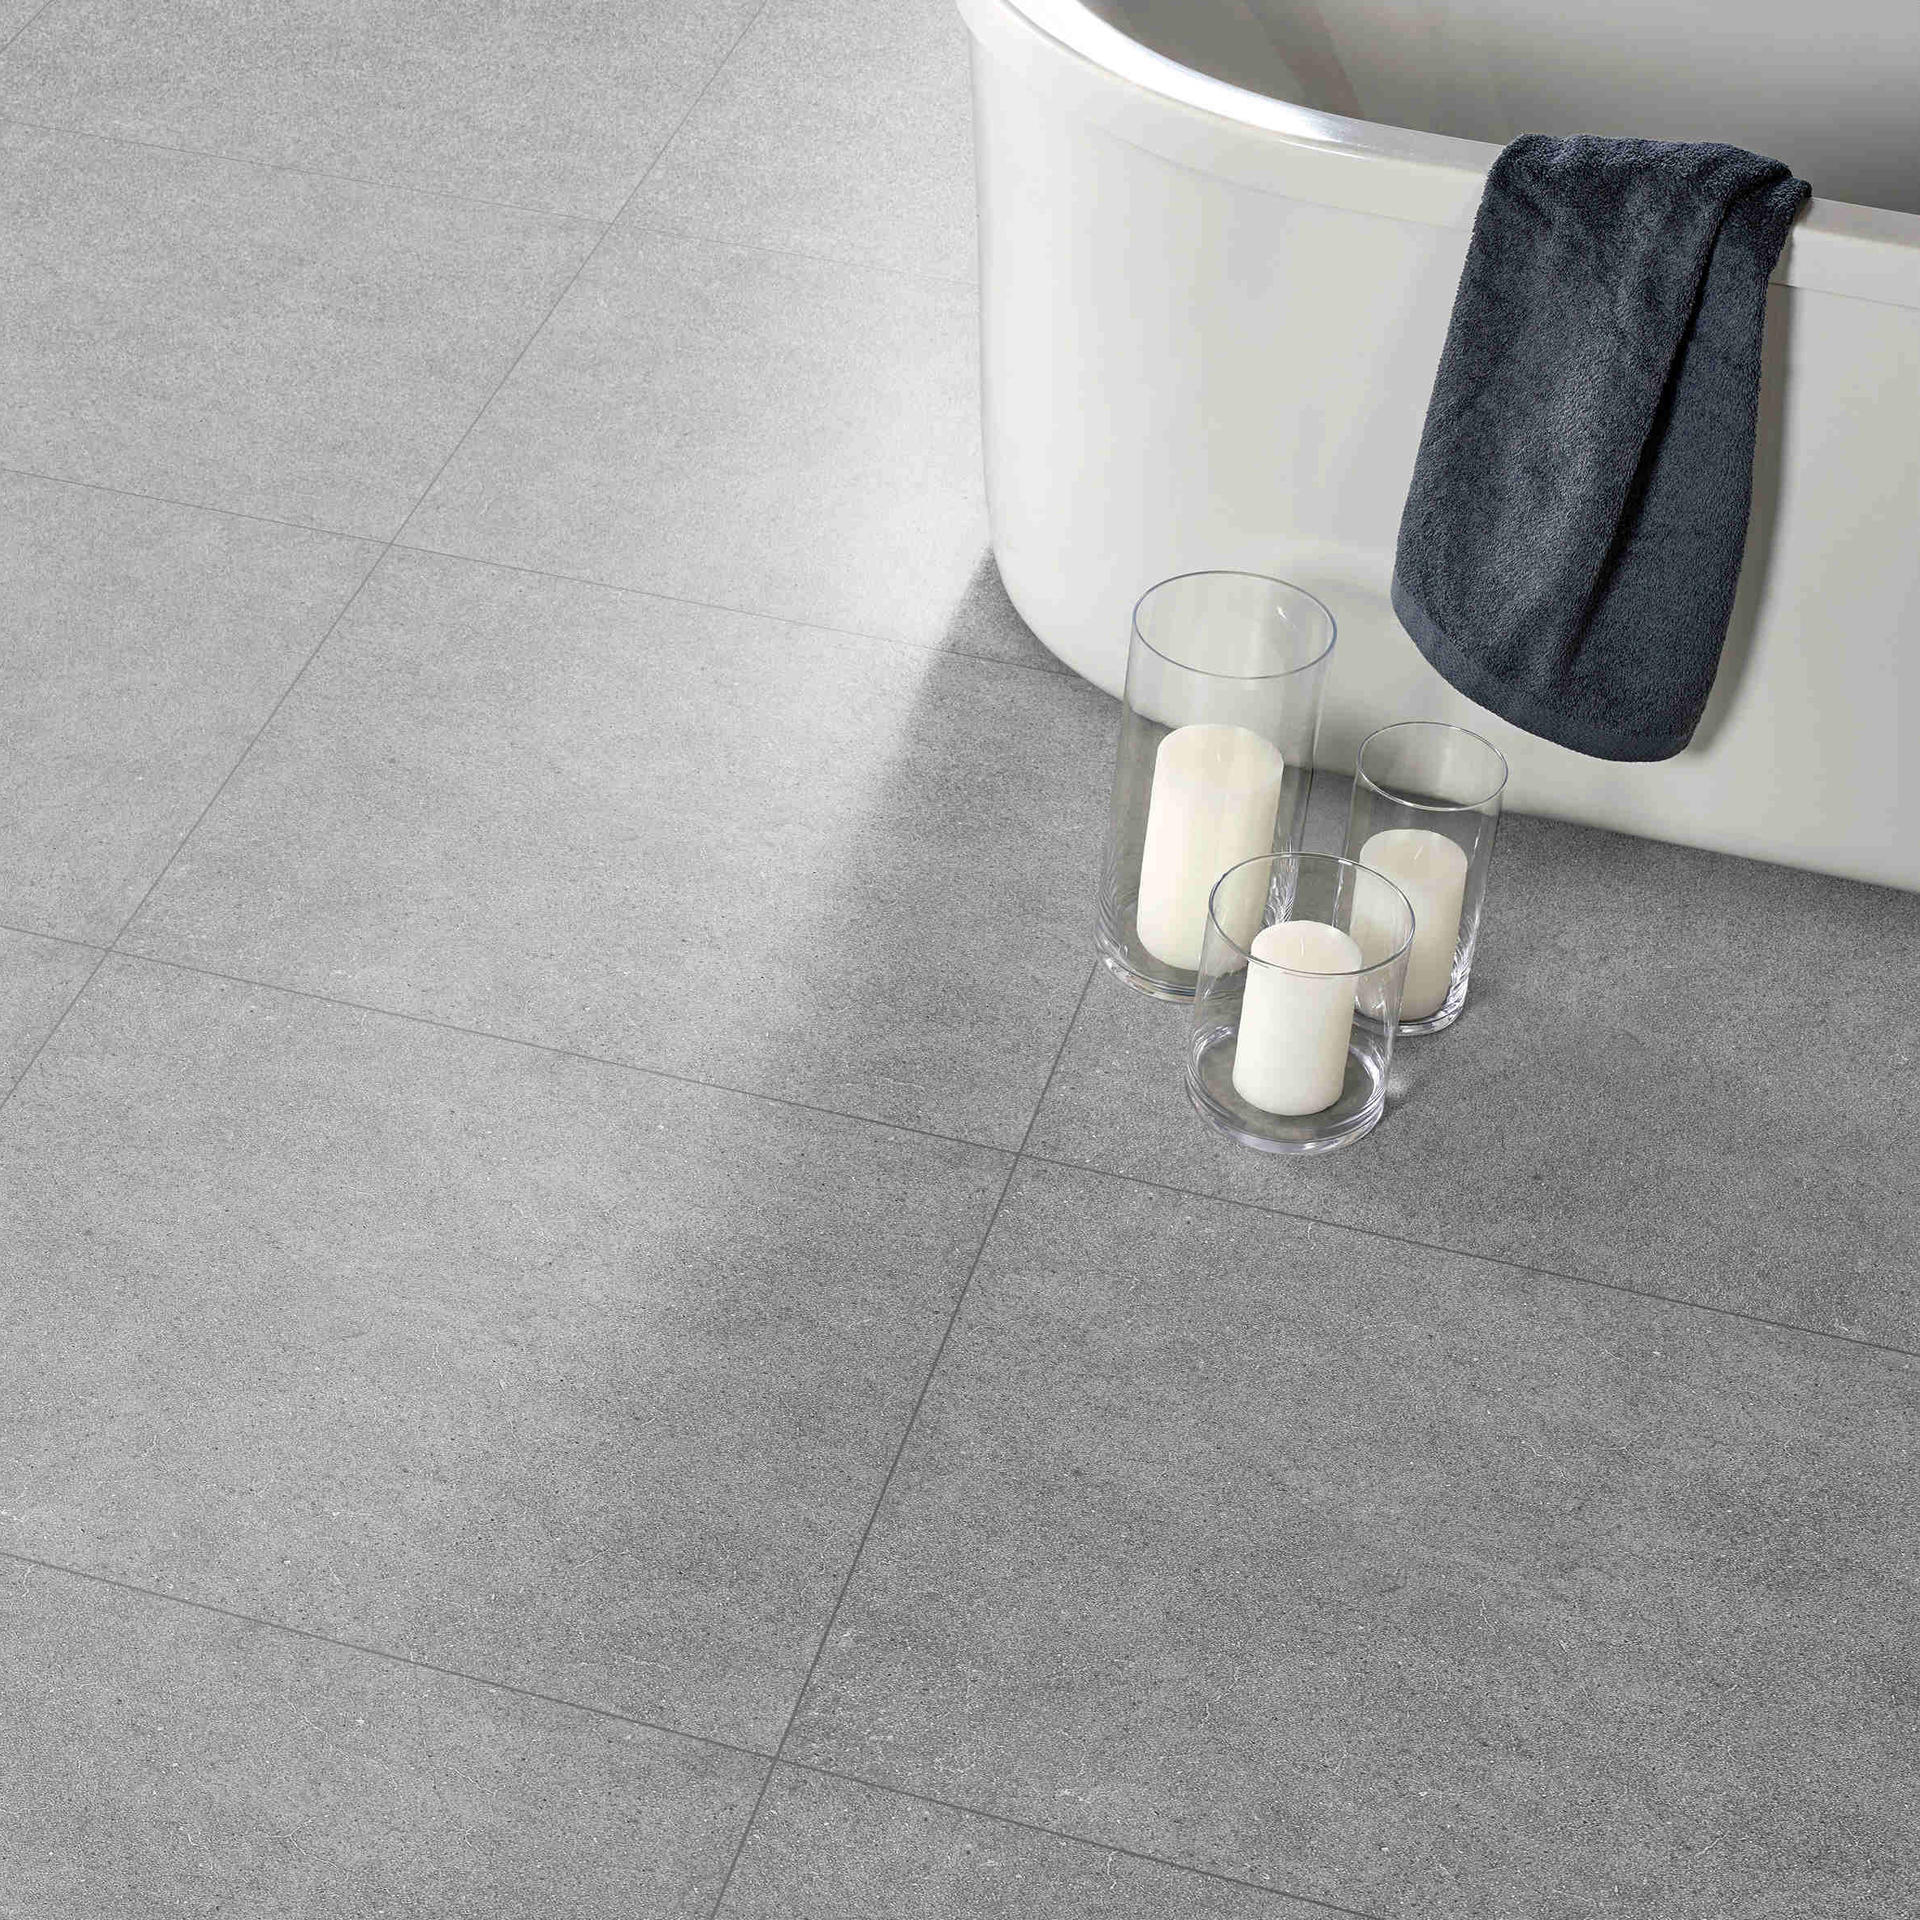 Yoga carreaux sol 60x60 floor tiles vintage glazed modern tiles porcelanosa 60x60first choice glazed porcelain tile